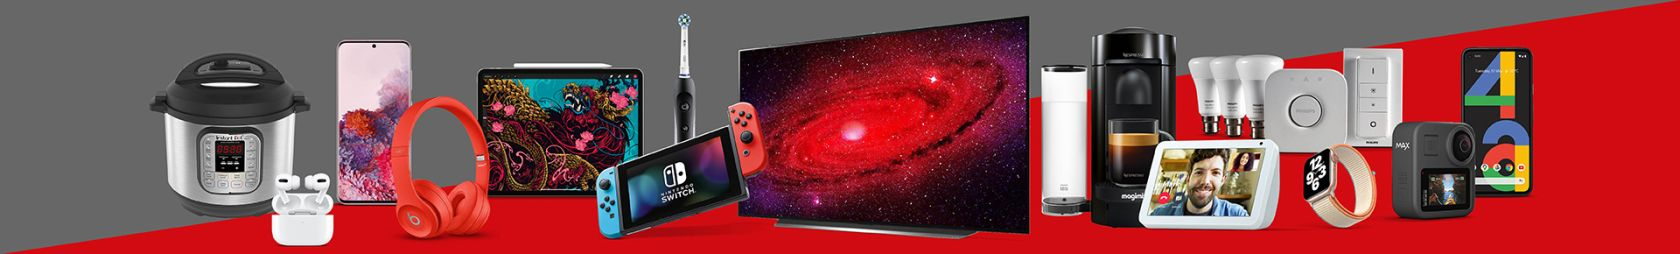 Best Black Friday Deals The Best Sales And Deals Right Now T3